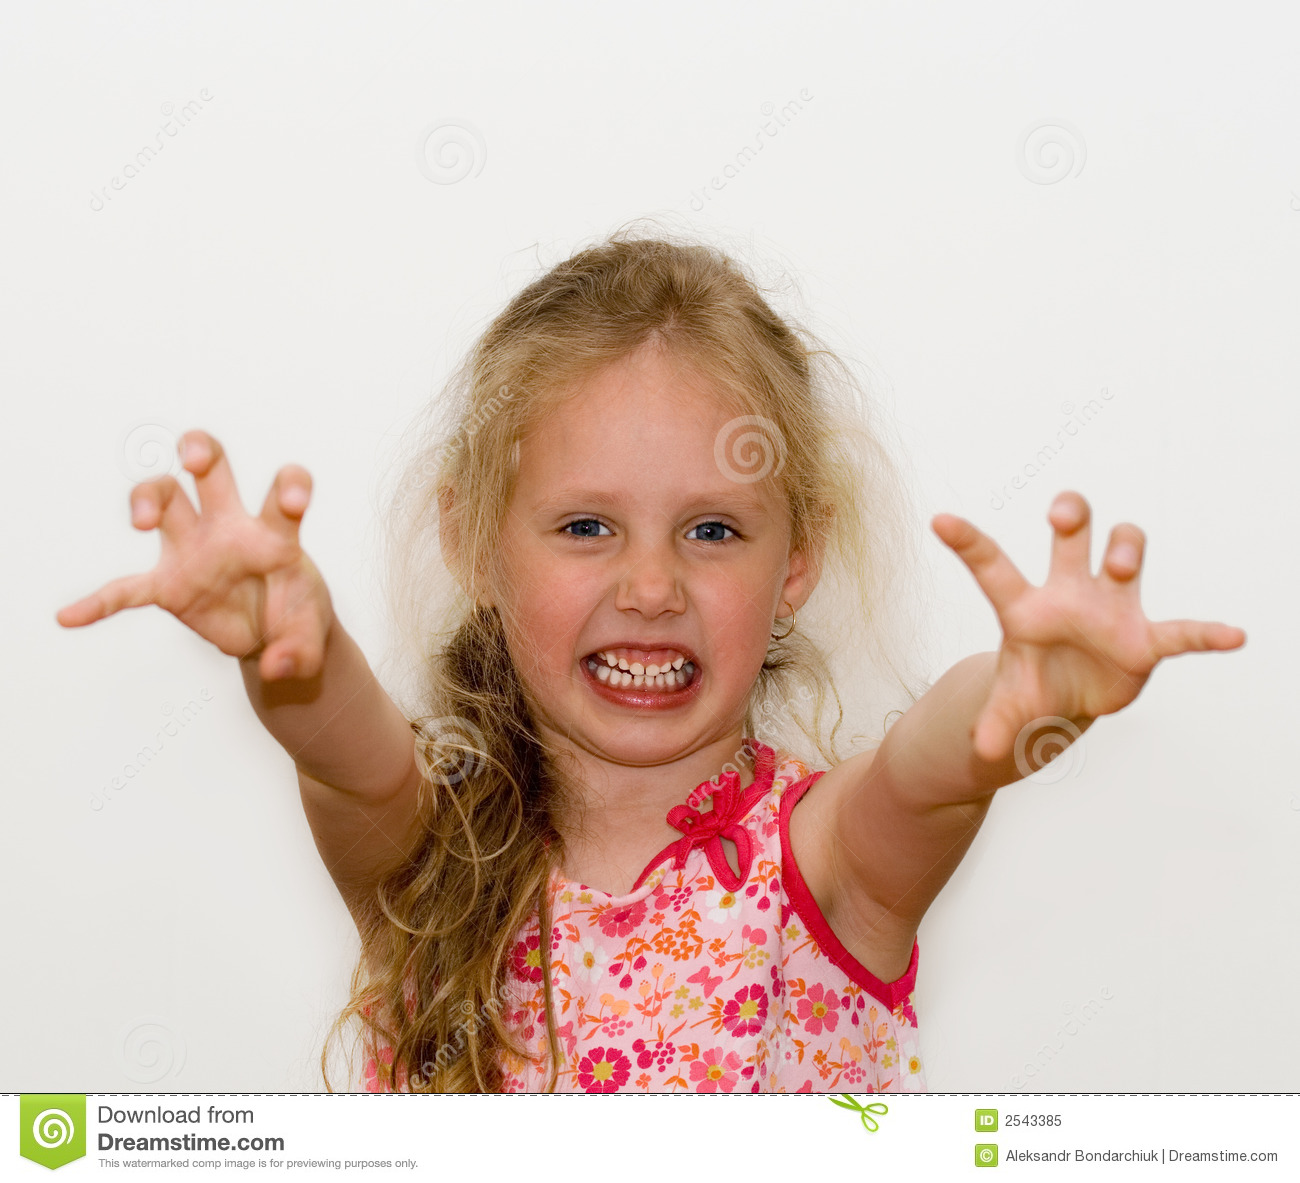 Angry Little Girl Royalty Free Stock Photo - Image: 2543385